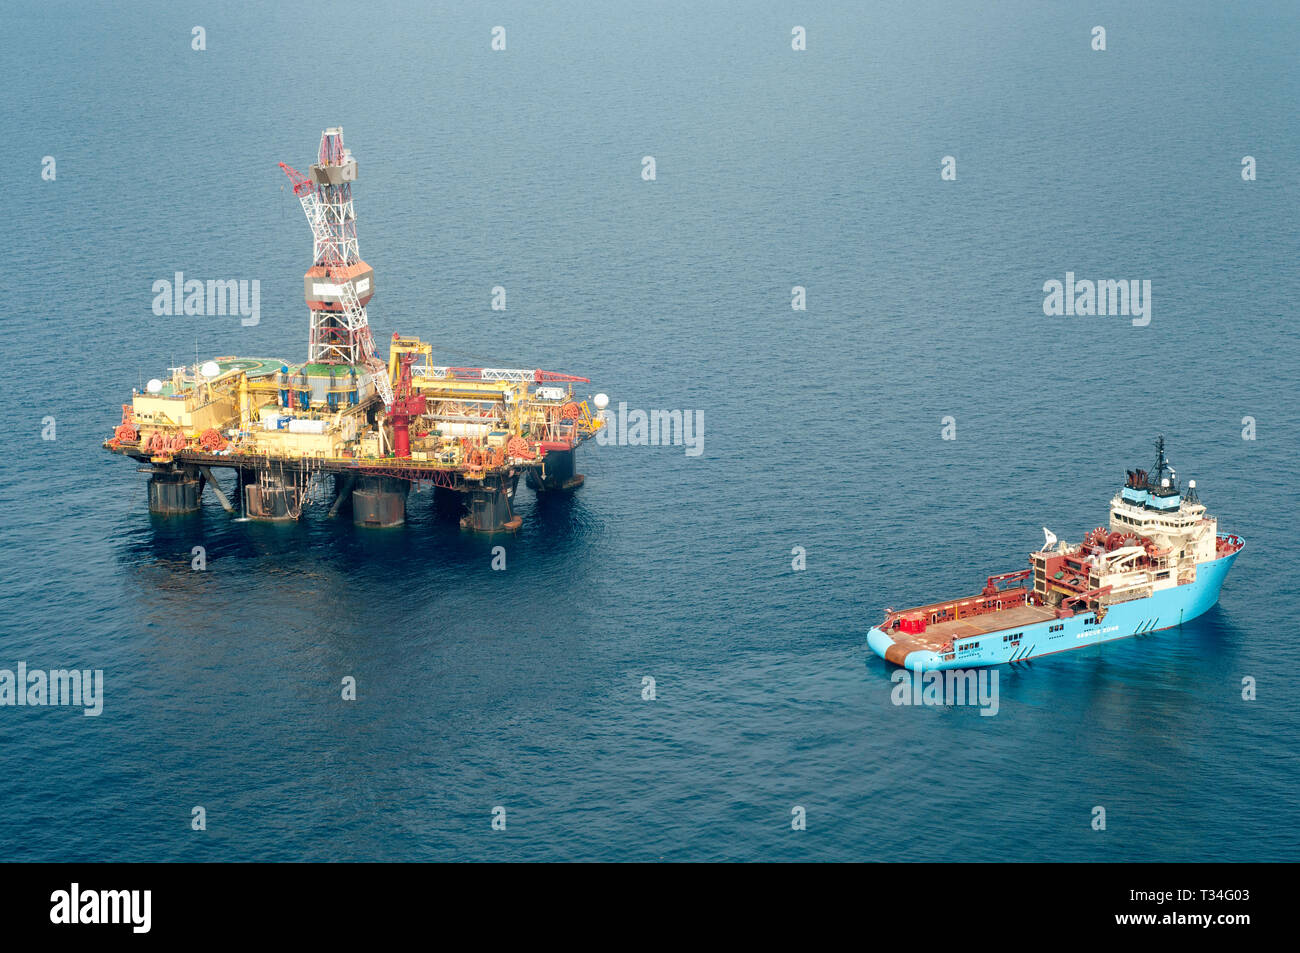 An oil rig offshore Balikpapan, Indonesia Stock Photo